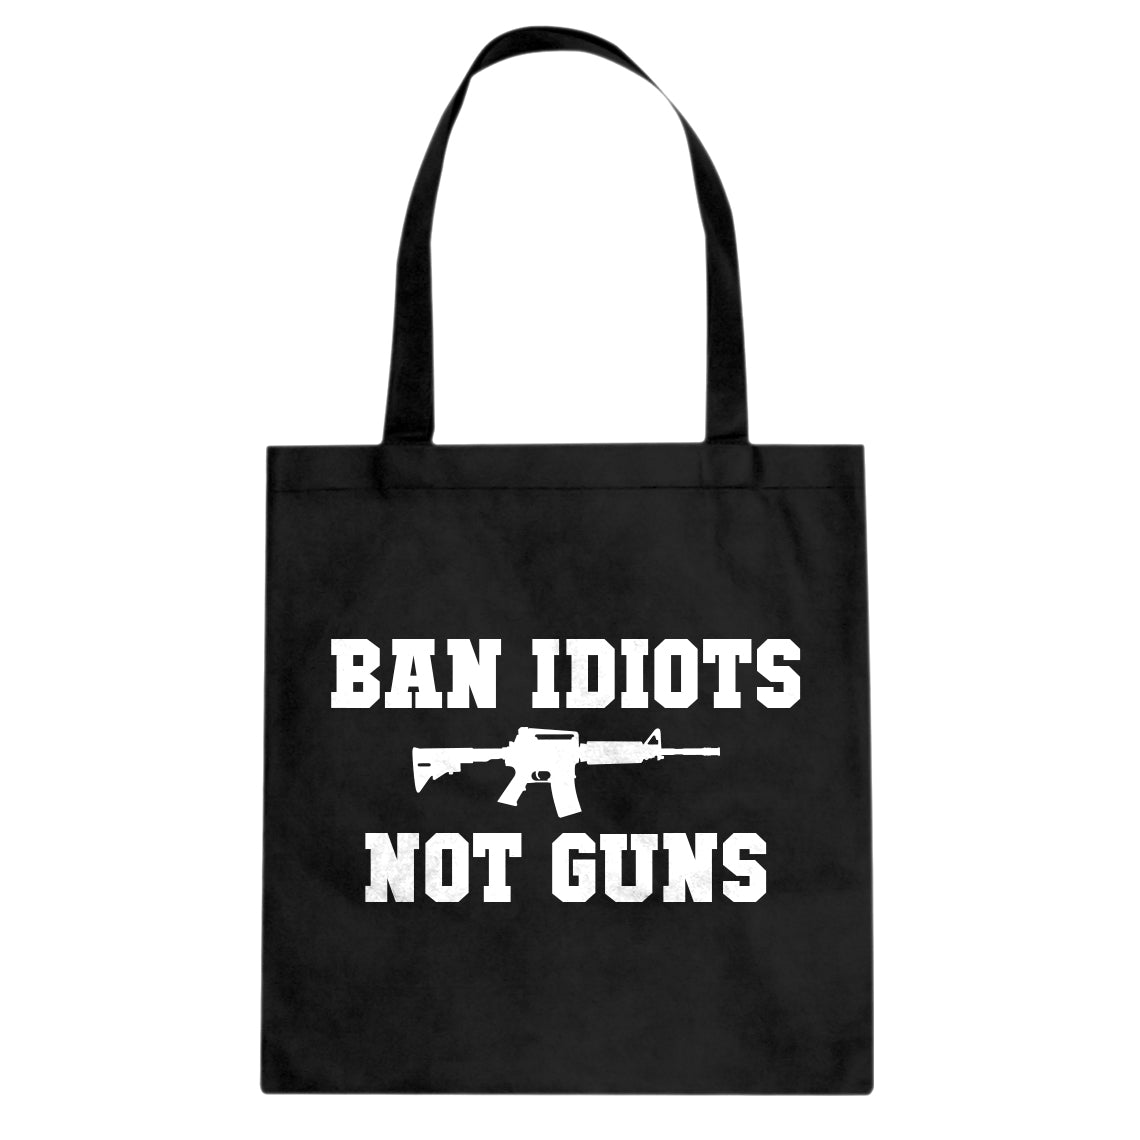 Tote Ban Idiots Not Guns Canvas Tote Bag